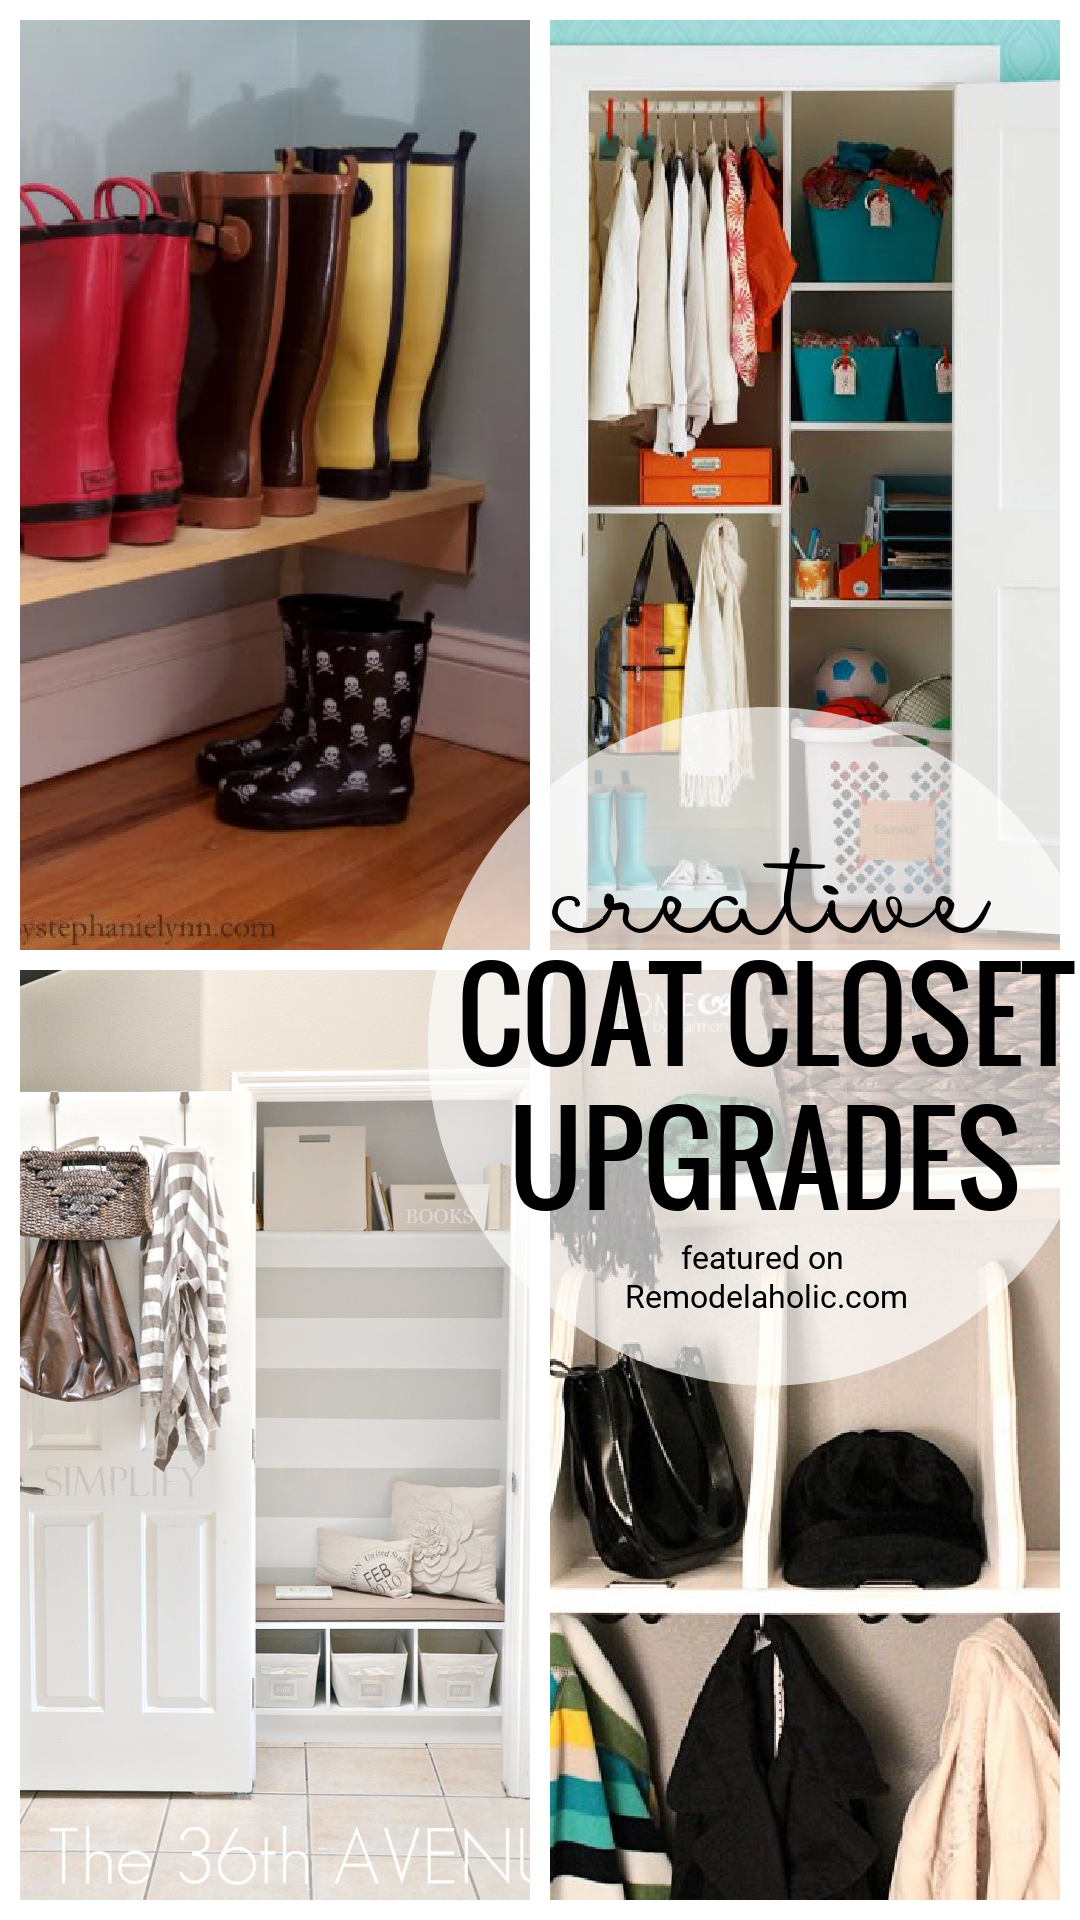 Get The Most Out Of A Small Closet With These Awesome Creative Coat Closet Upgrades Featured On Remodelaholic.com